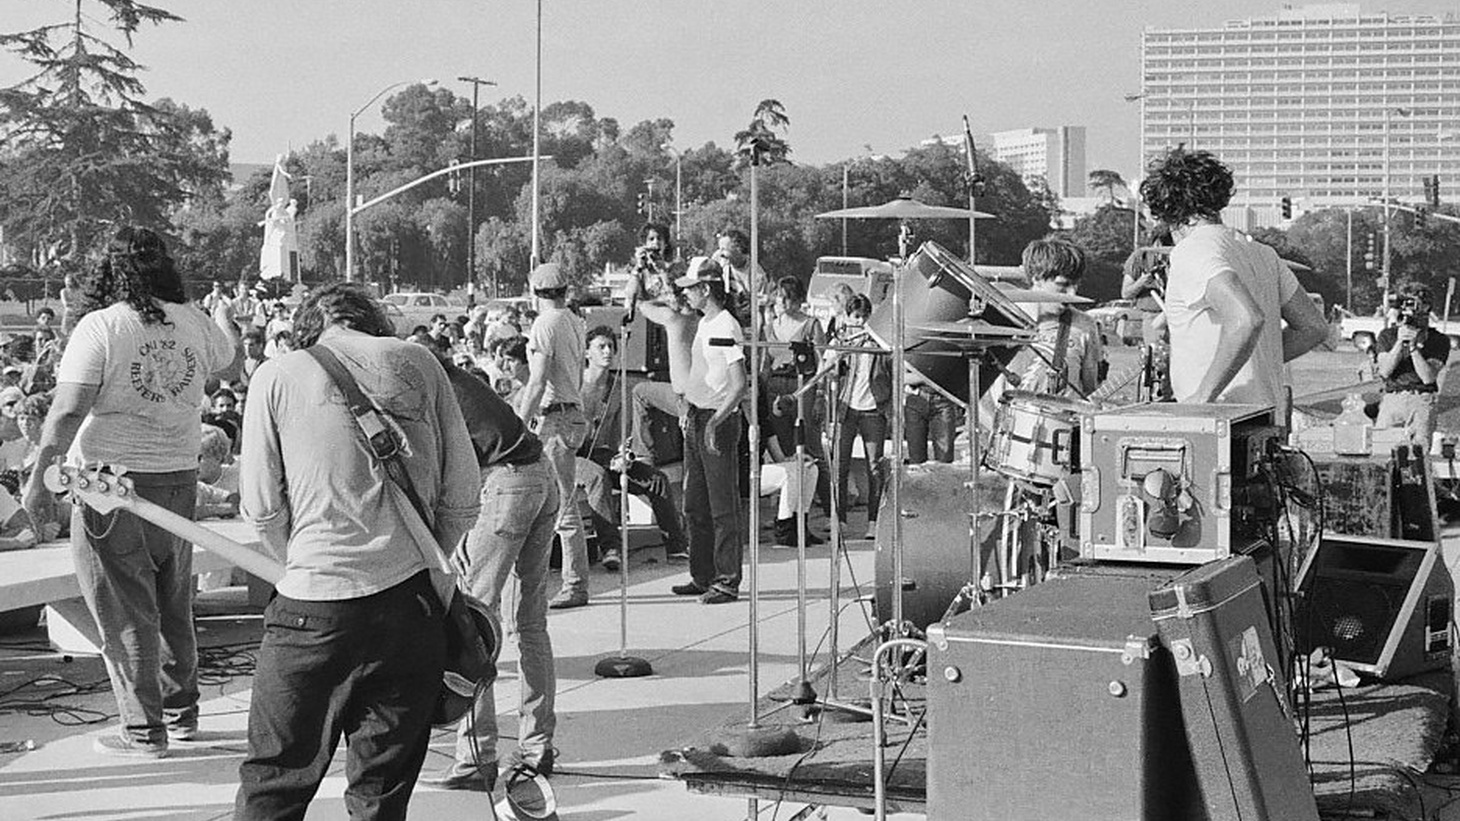 Black Flag performing at the Federal Building in Westwood in the 1980s.